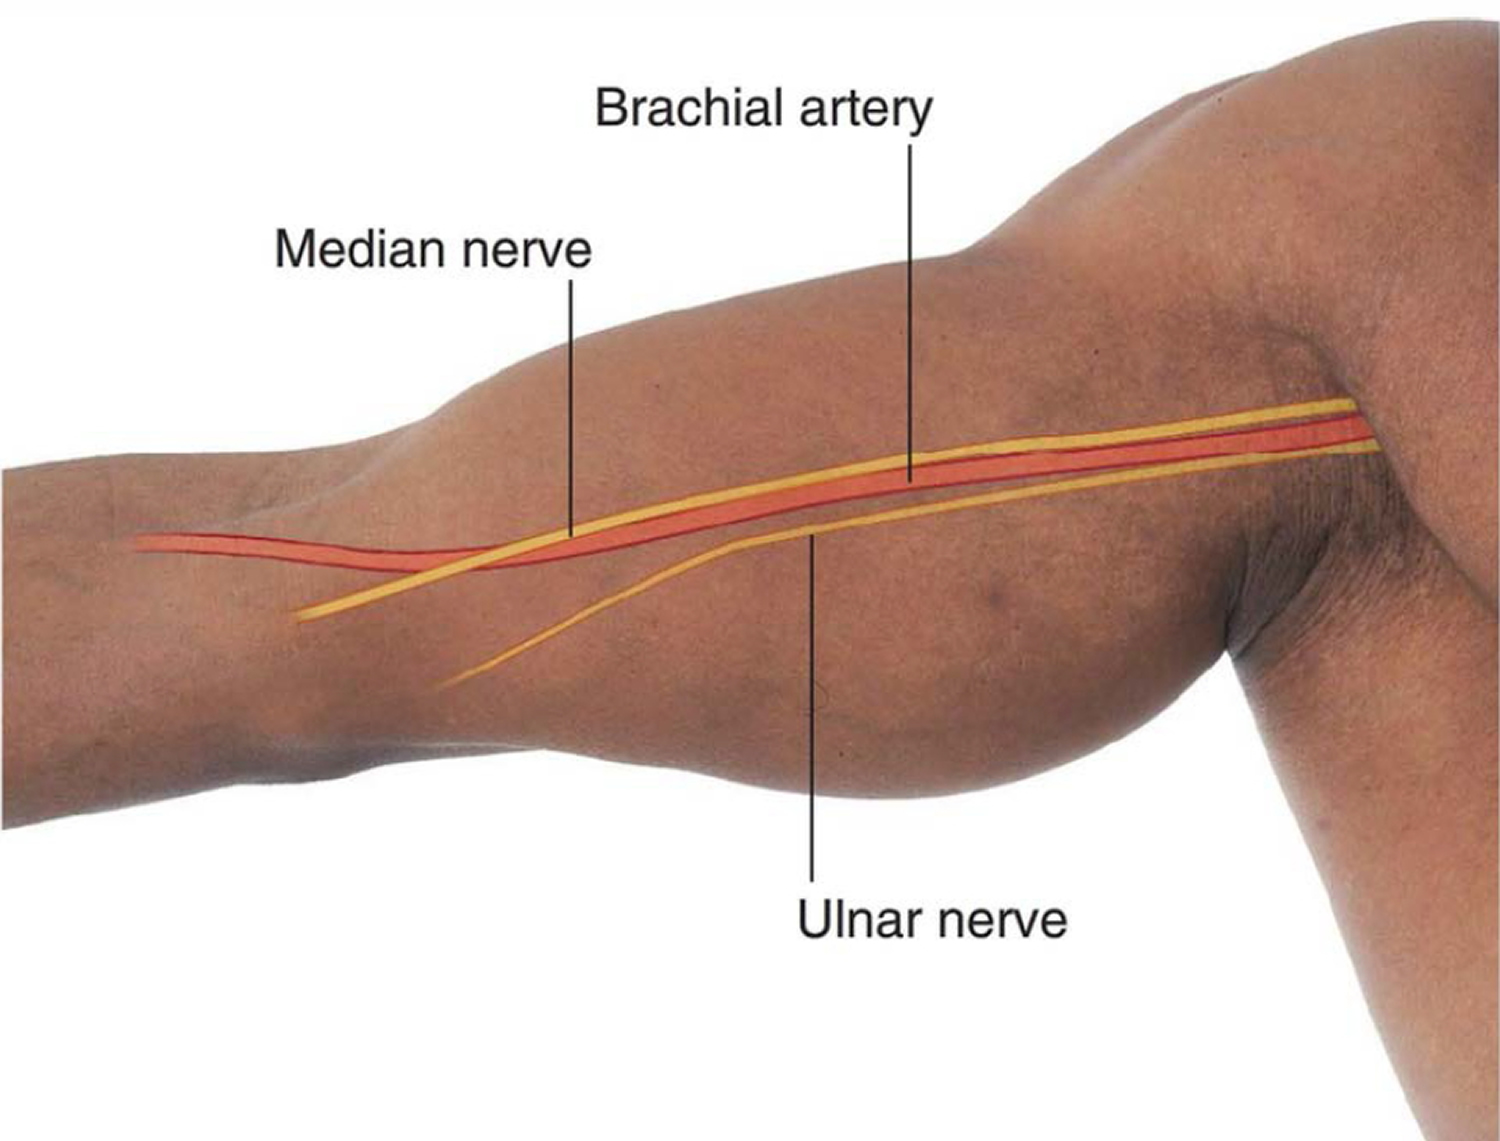 brachial artery location in the arm